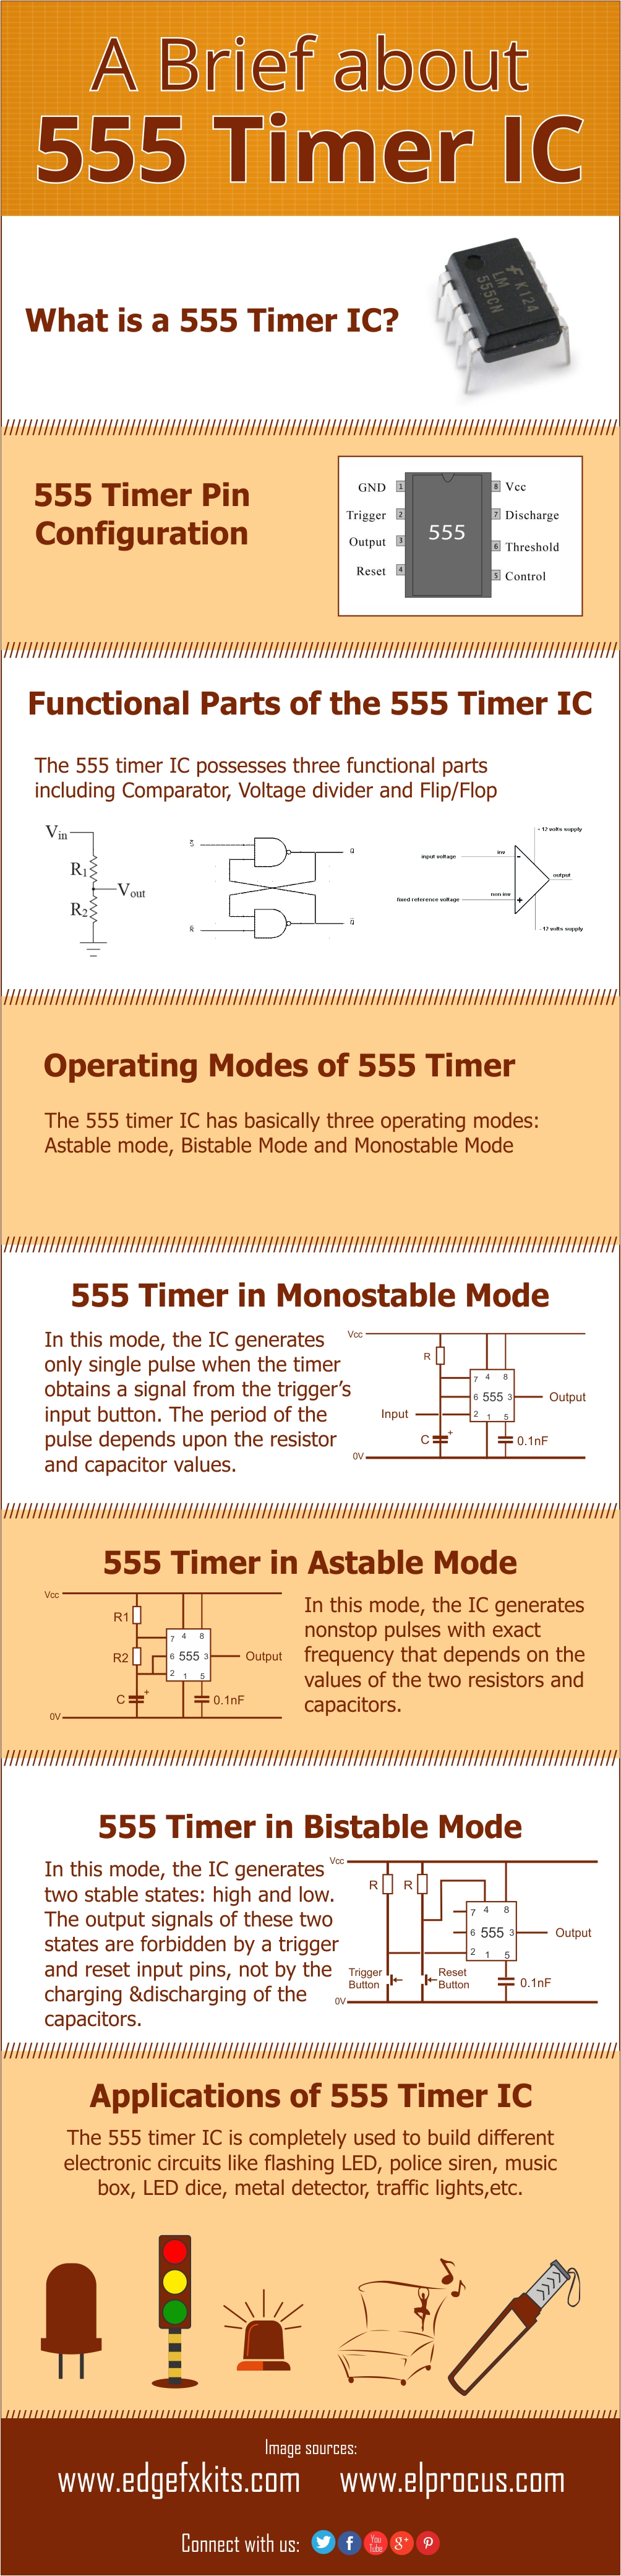 555 Timer Pin Configuration And Operating Modes Karmashares Llc Ic Ne555 Diagram A Brief About Infographics